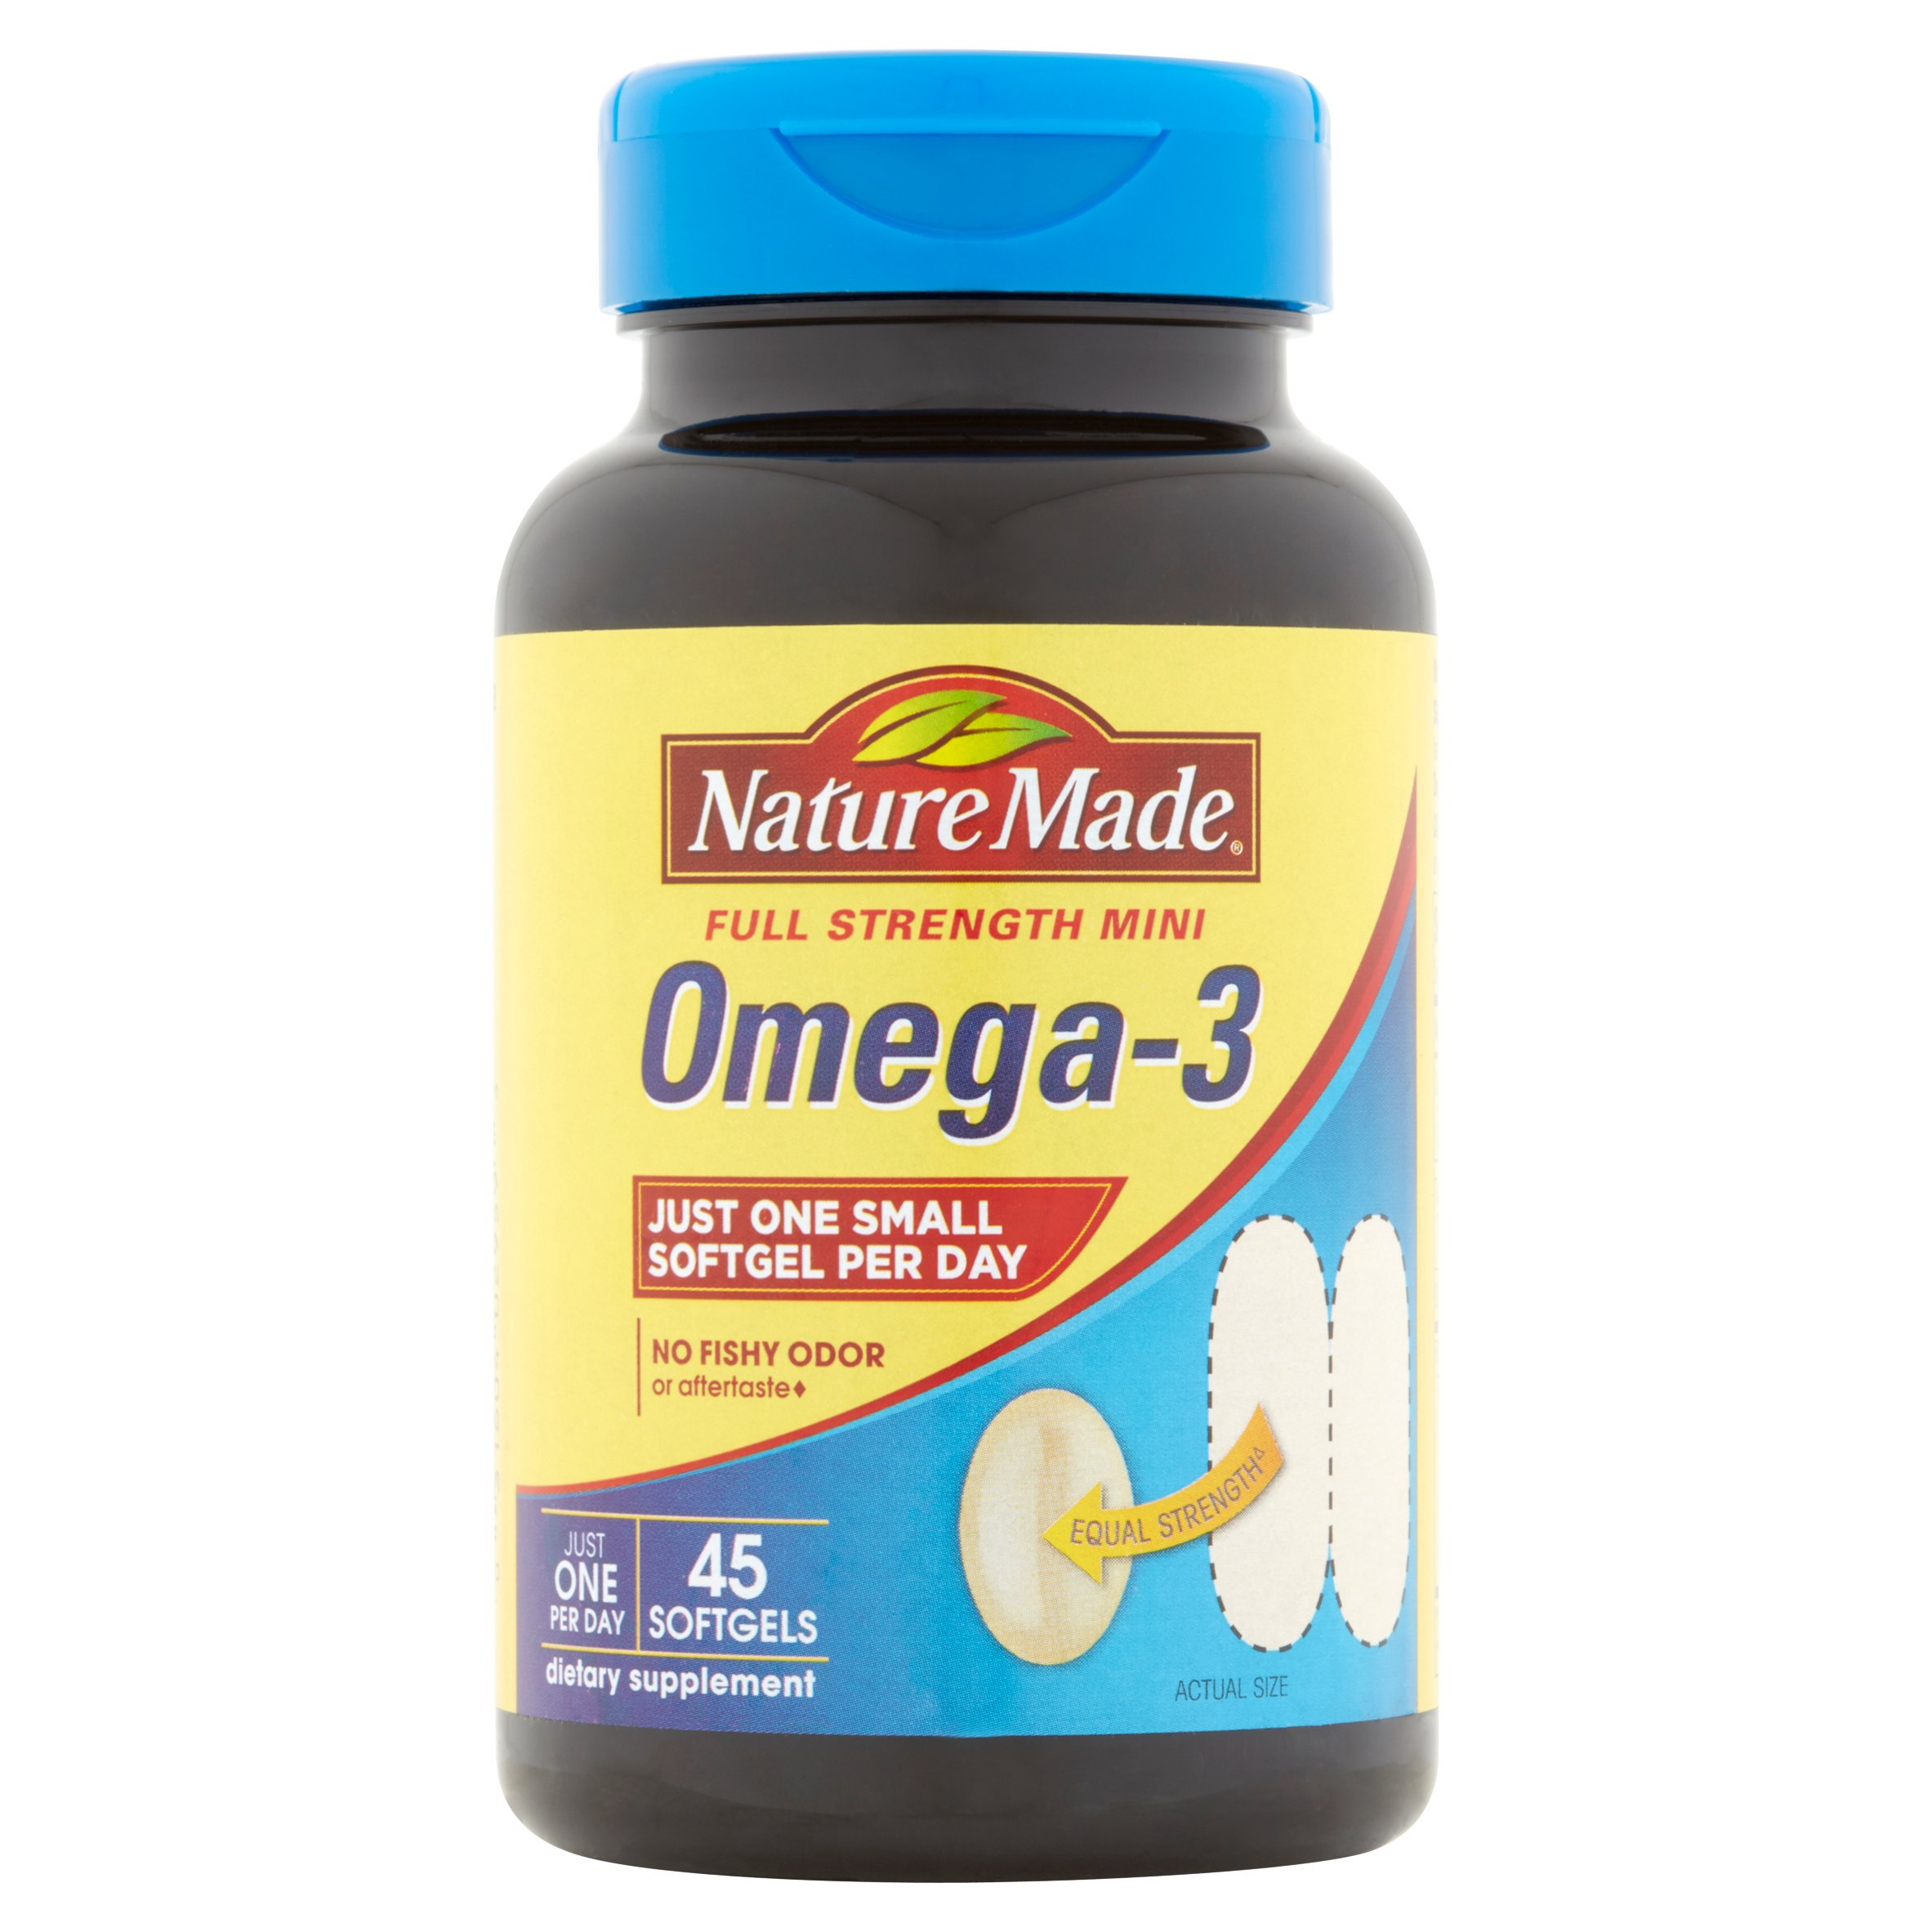 Nature Made Full Strength Mini Omega-3 Softgels, 45 count